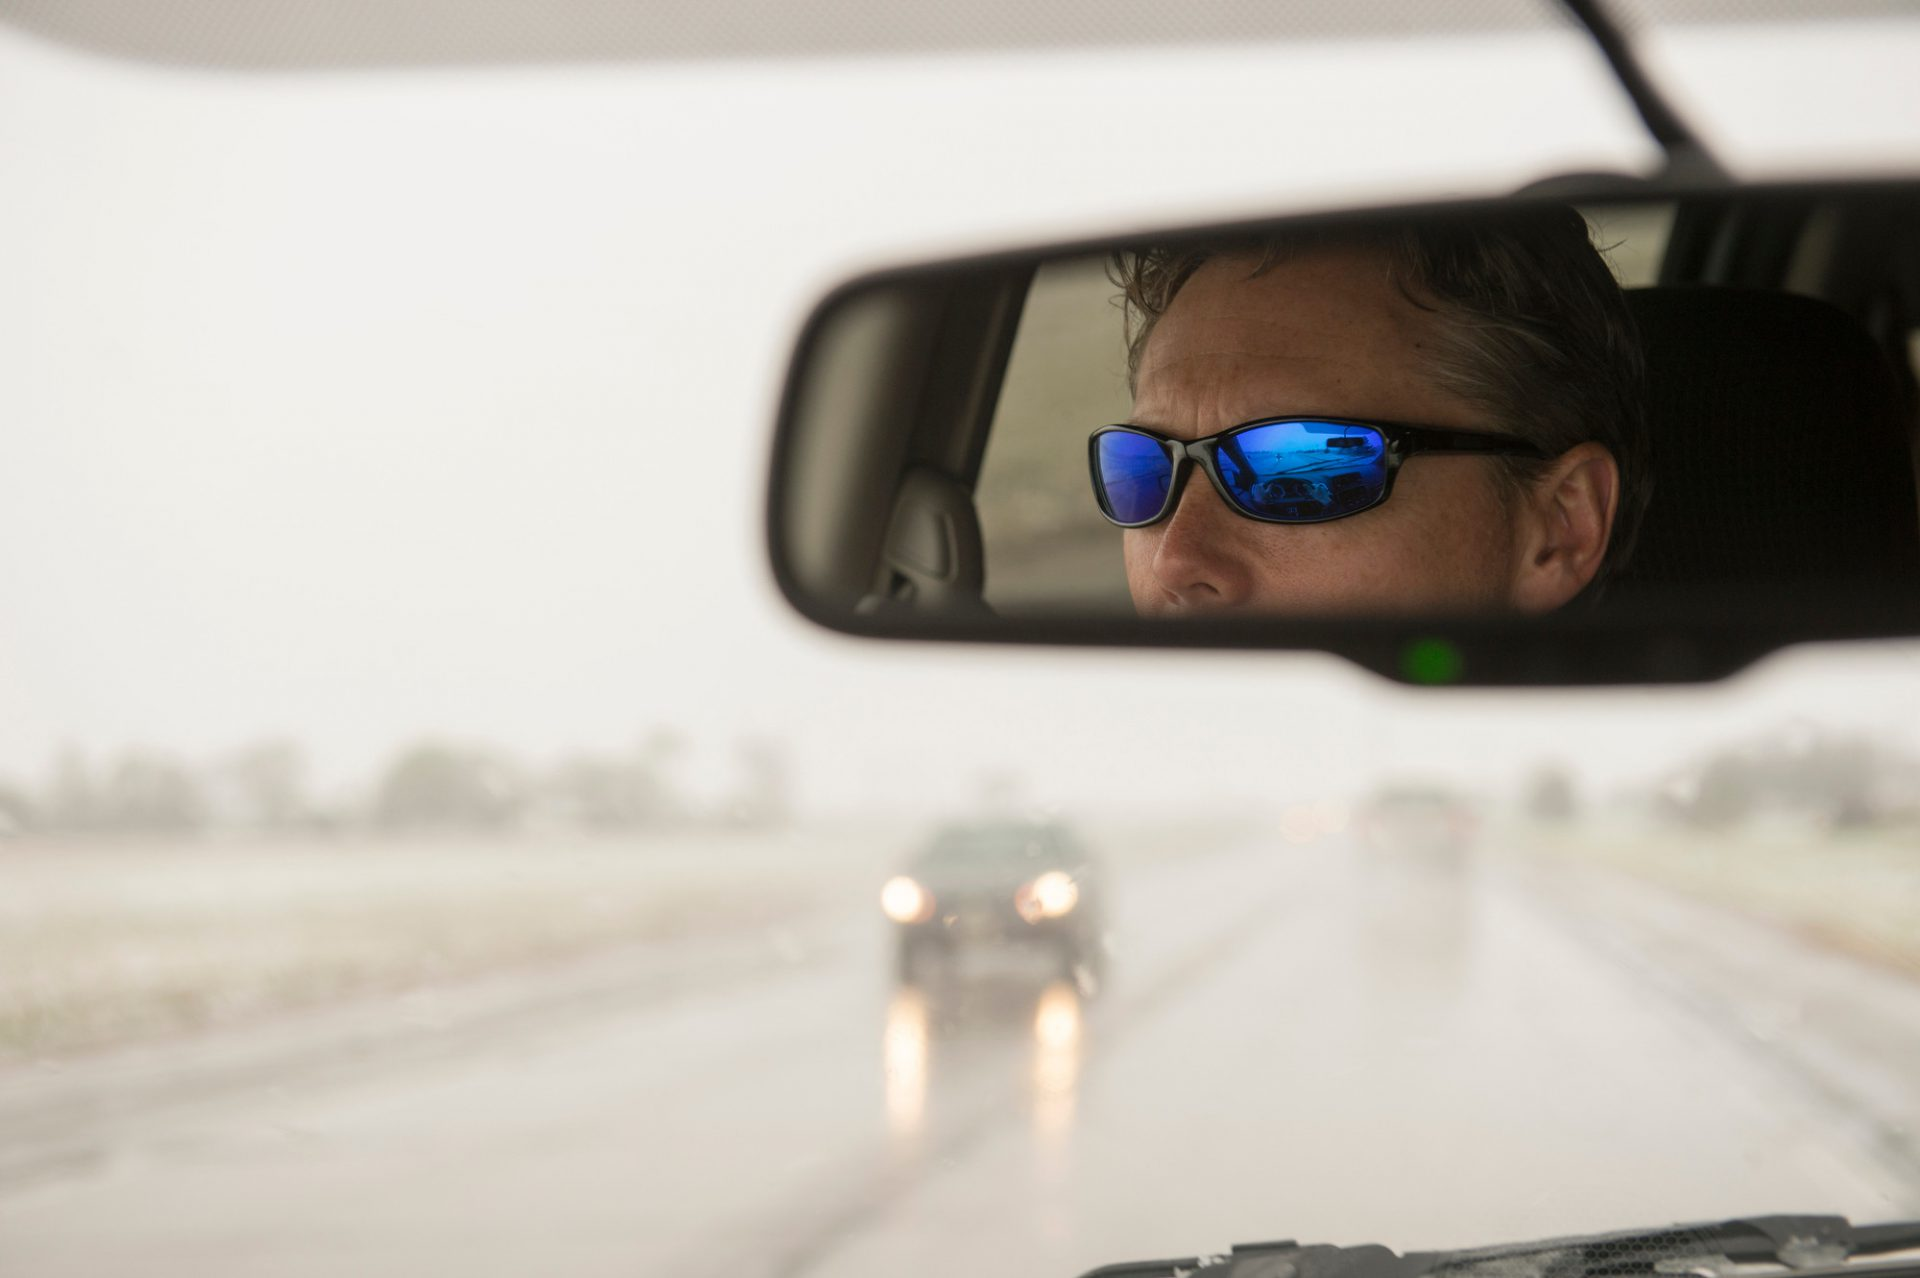 Photo: A man's reflection shows in the rear view mirror as he drives in winter weather conditions.